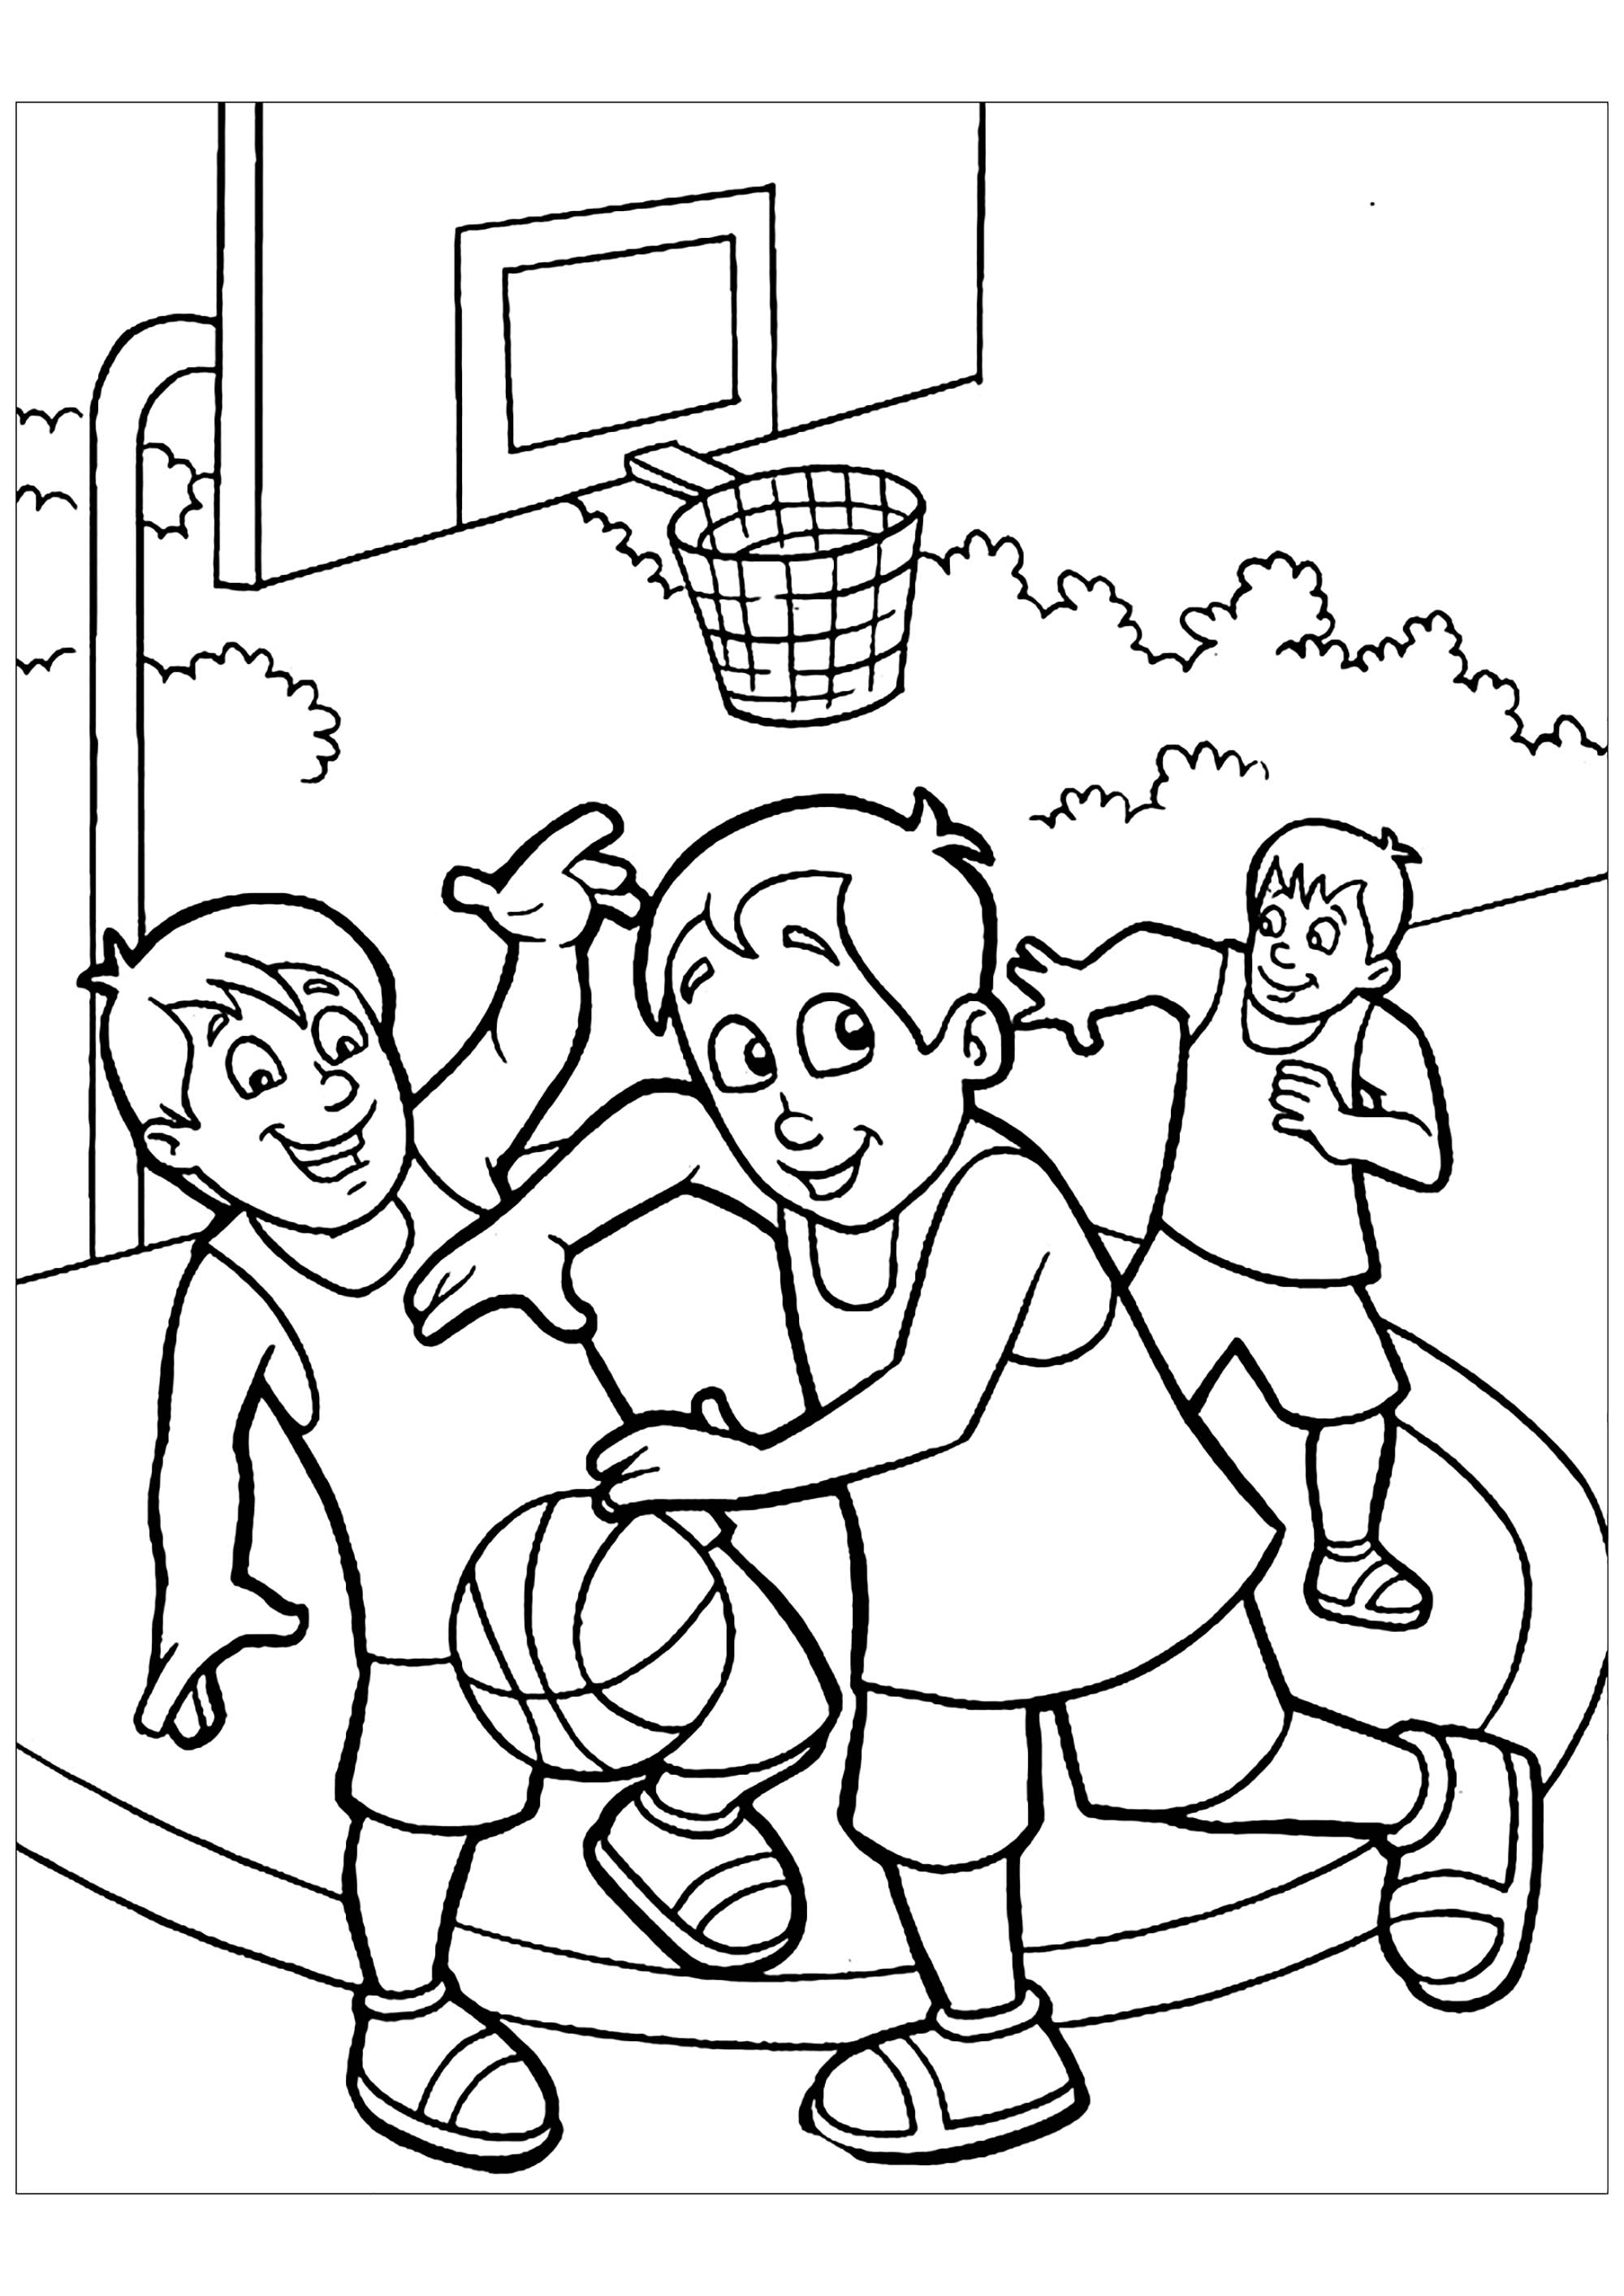 basketball pictures to color basketball coloring pages free download on clipartmag pictures color to basketball